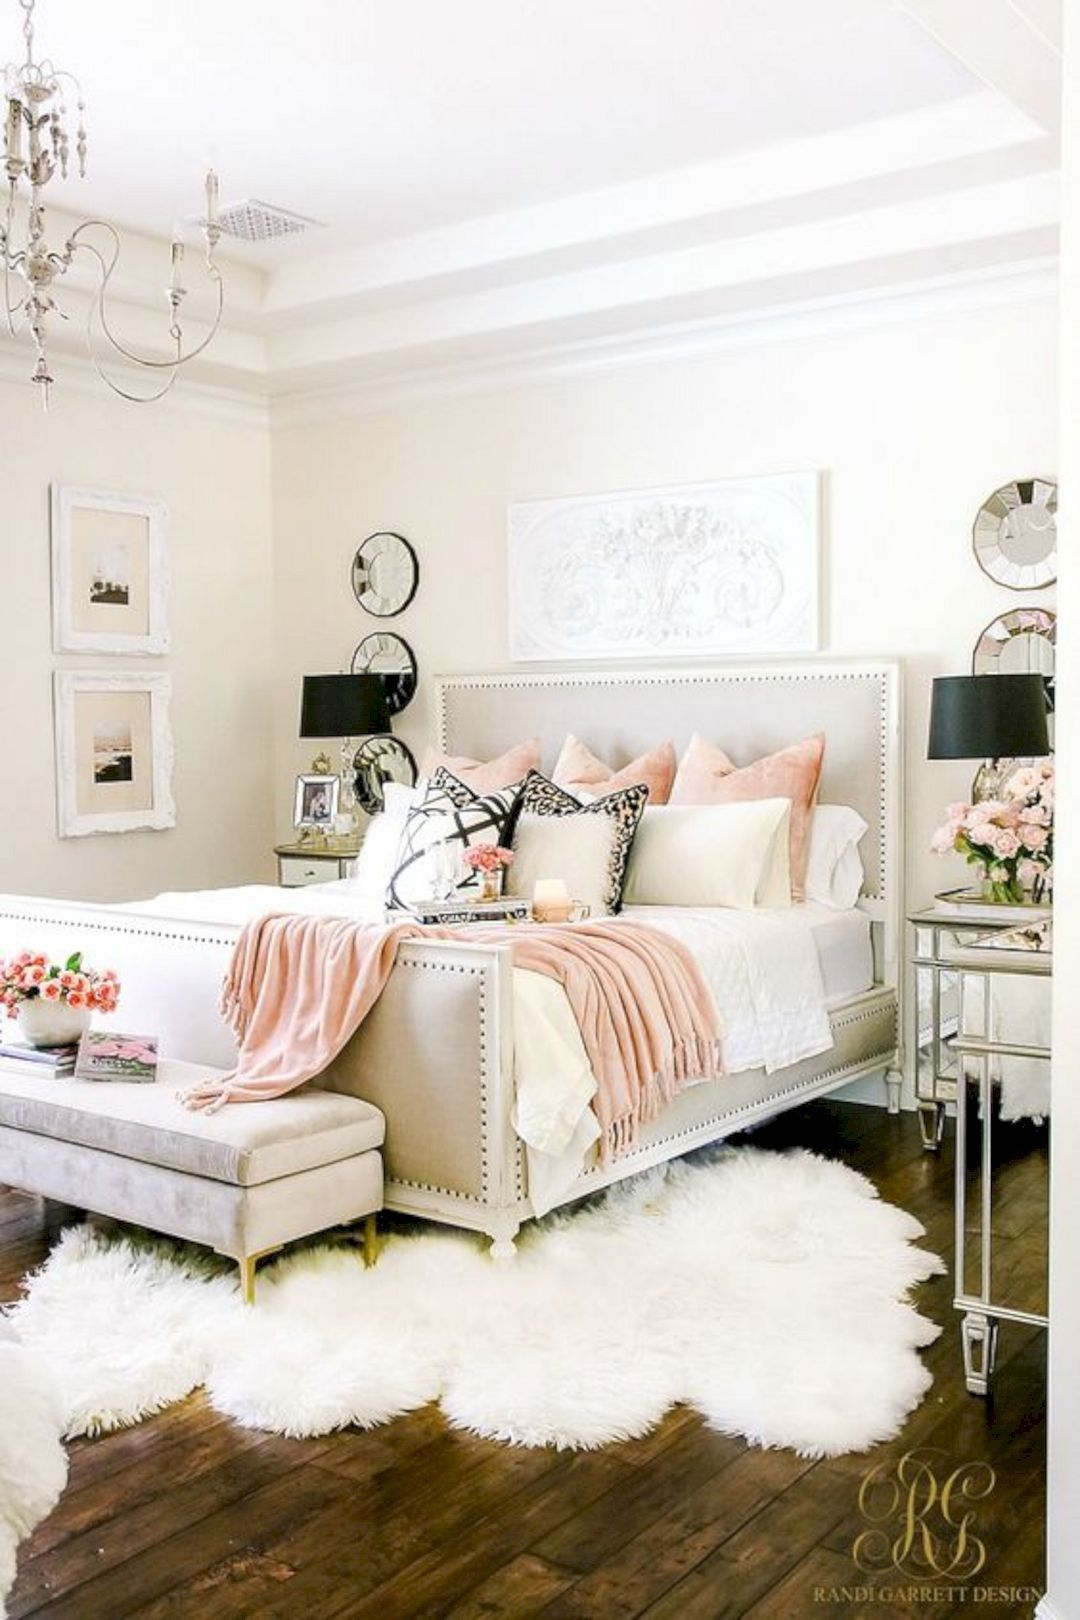 15 Elegant Bedroom Designs in 2018 | Dreamy | Pinterest | Bedrooms ...